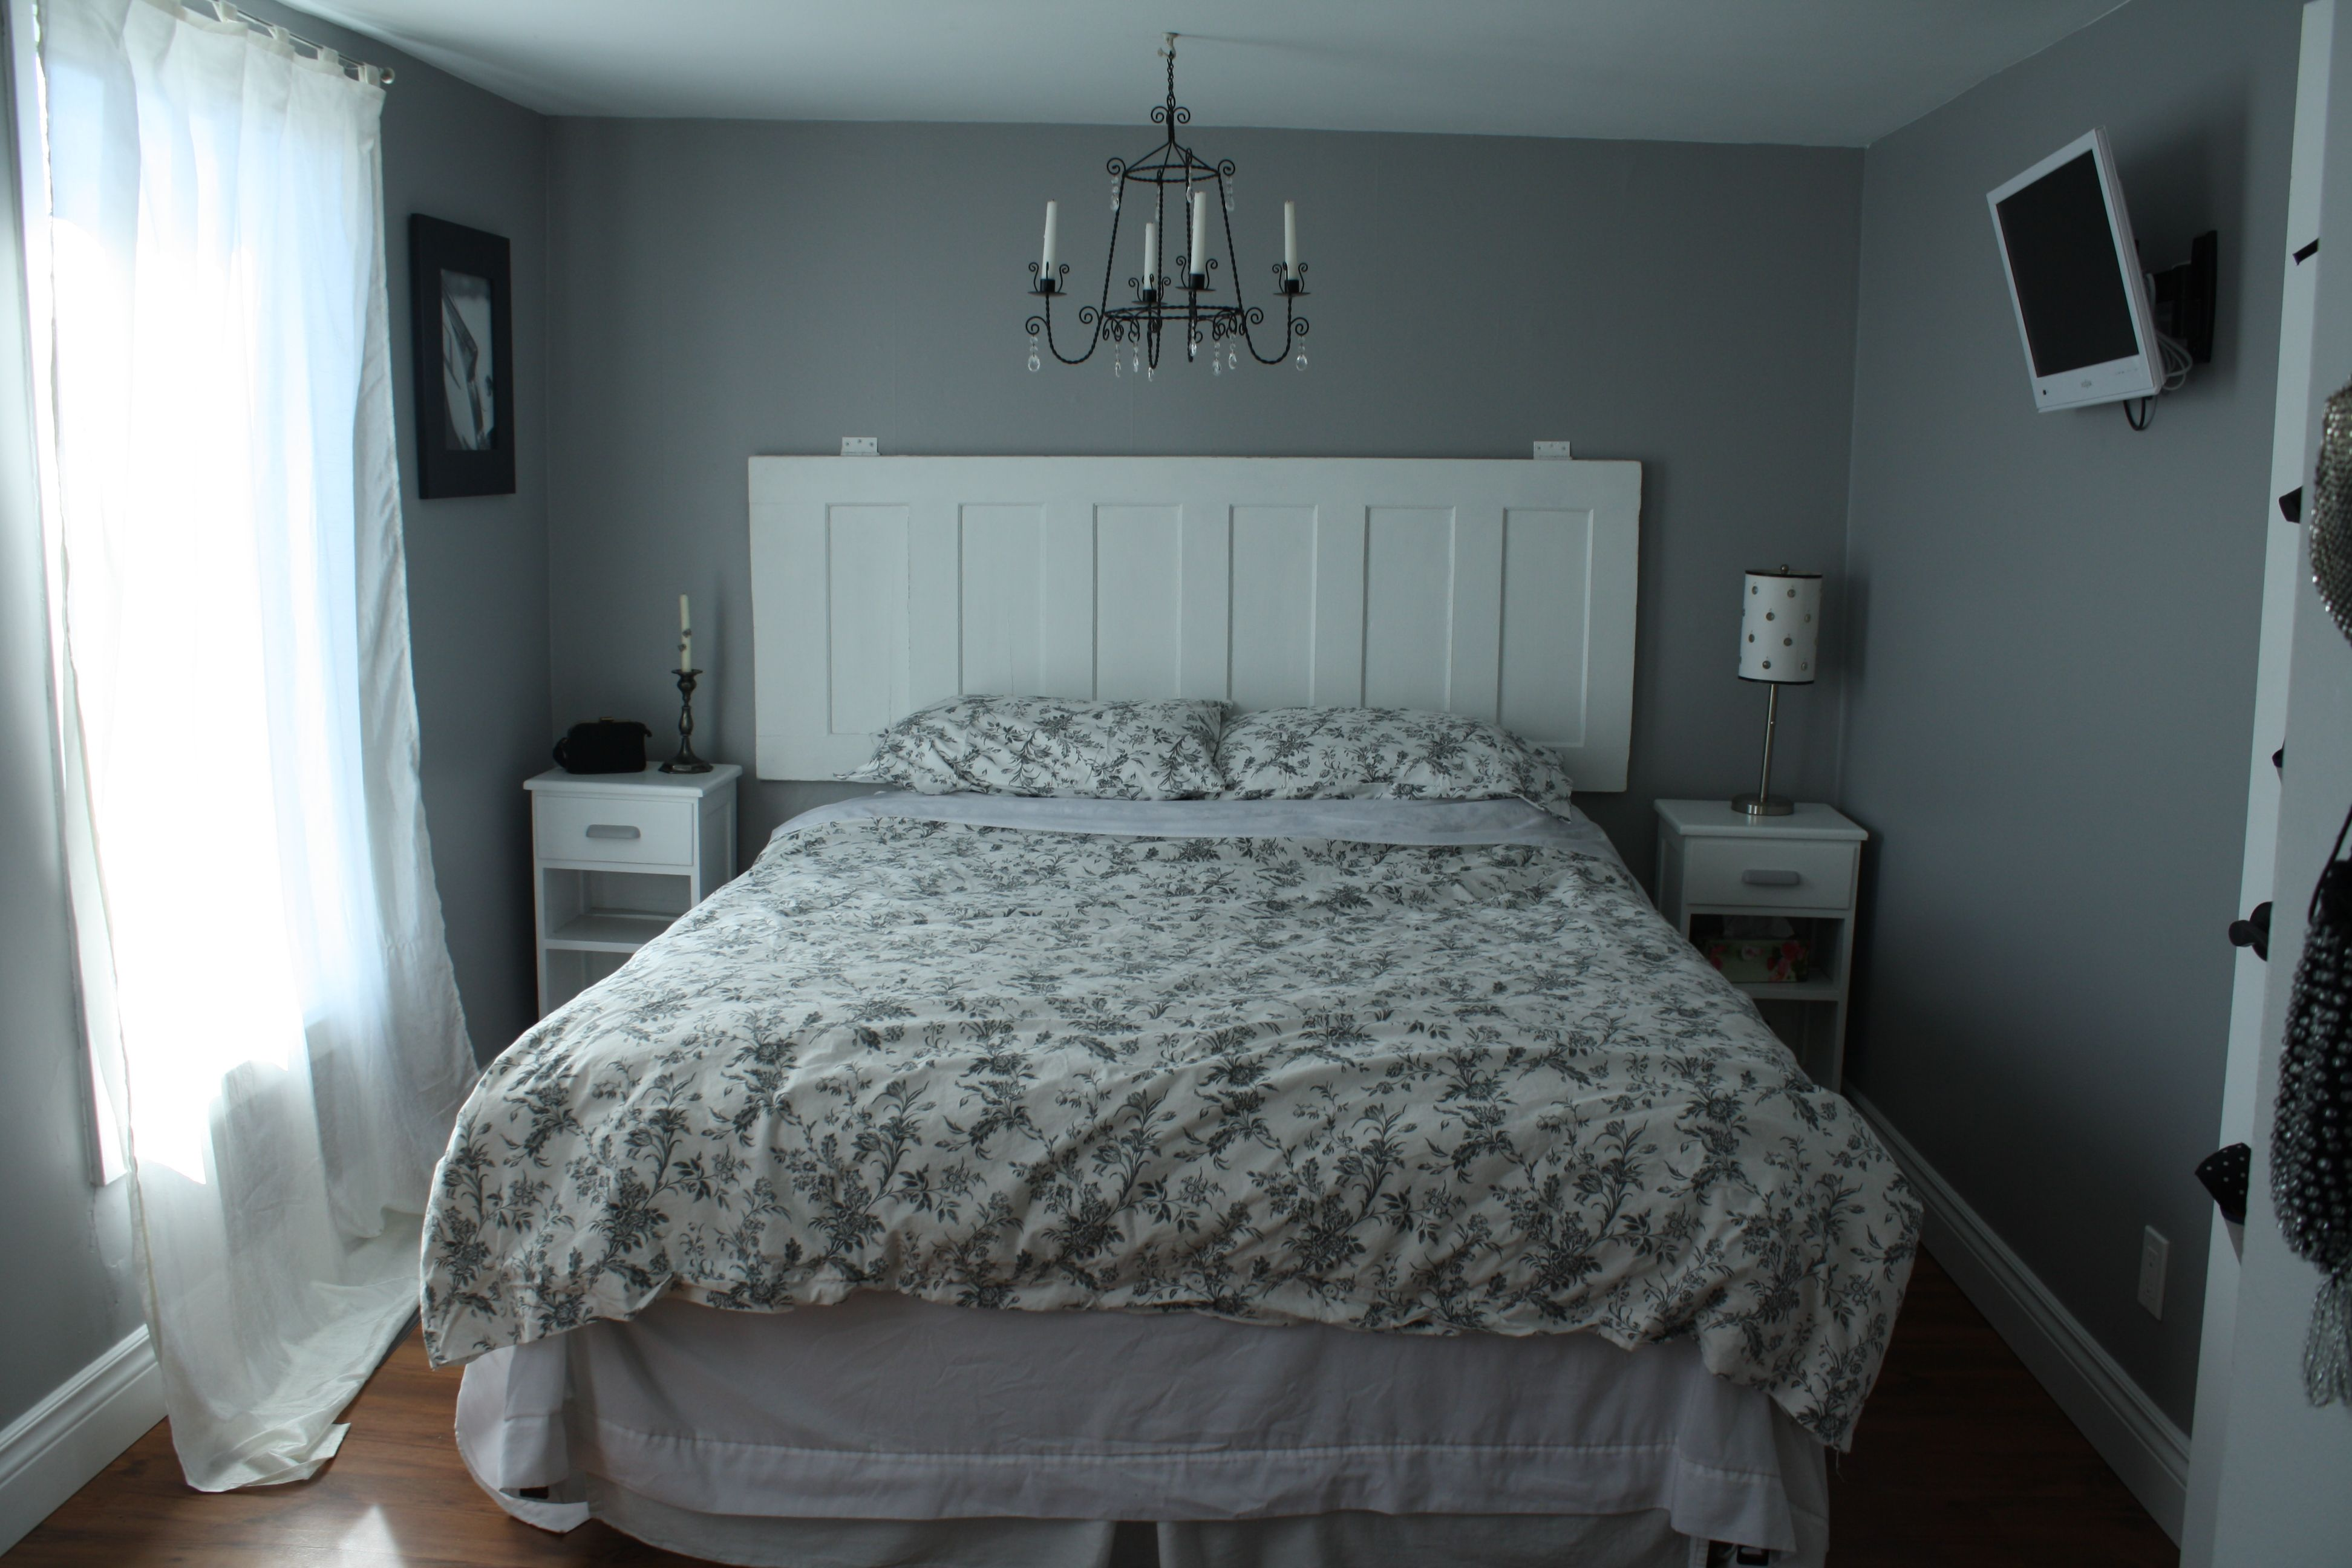 I really love the idea of using an old door for a headboard but i